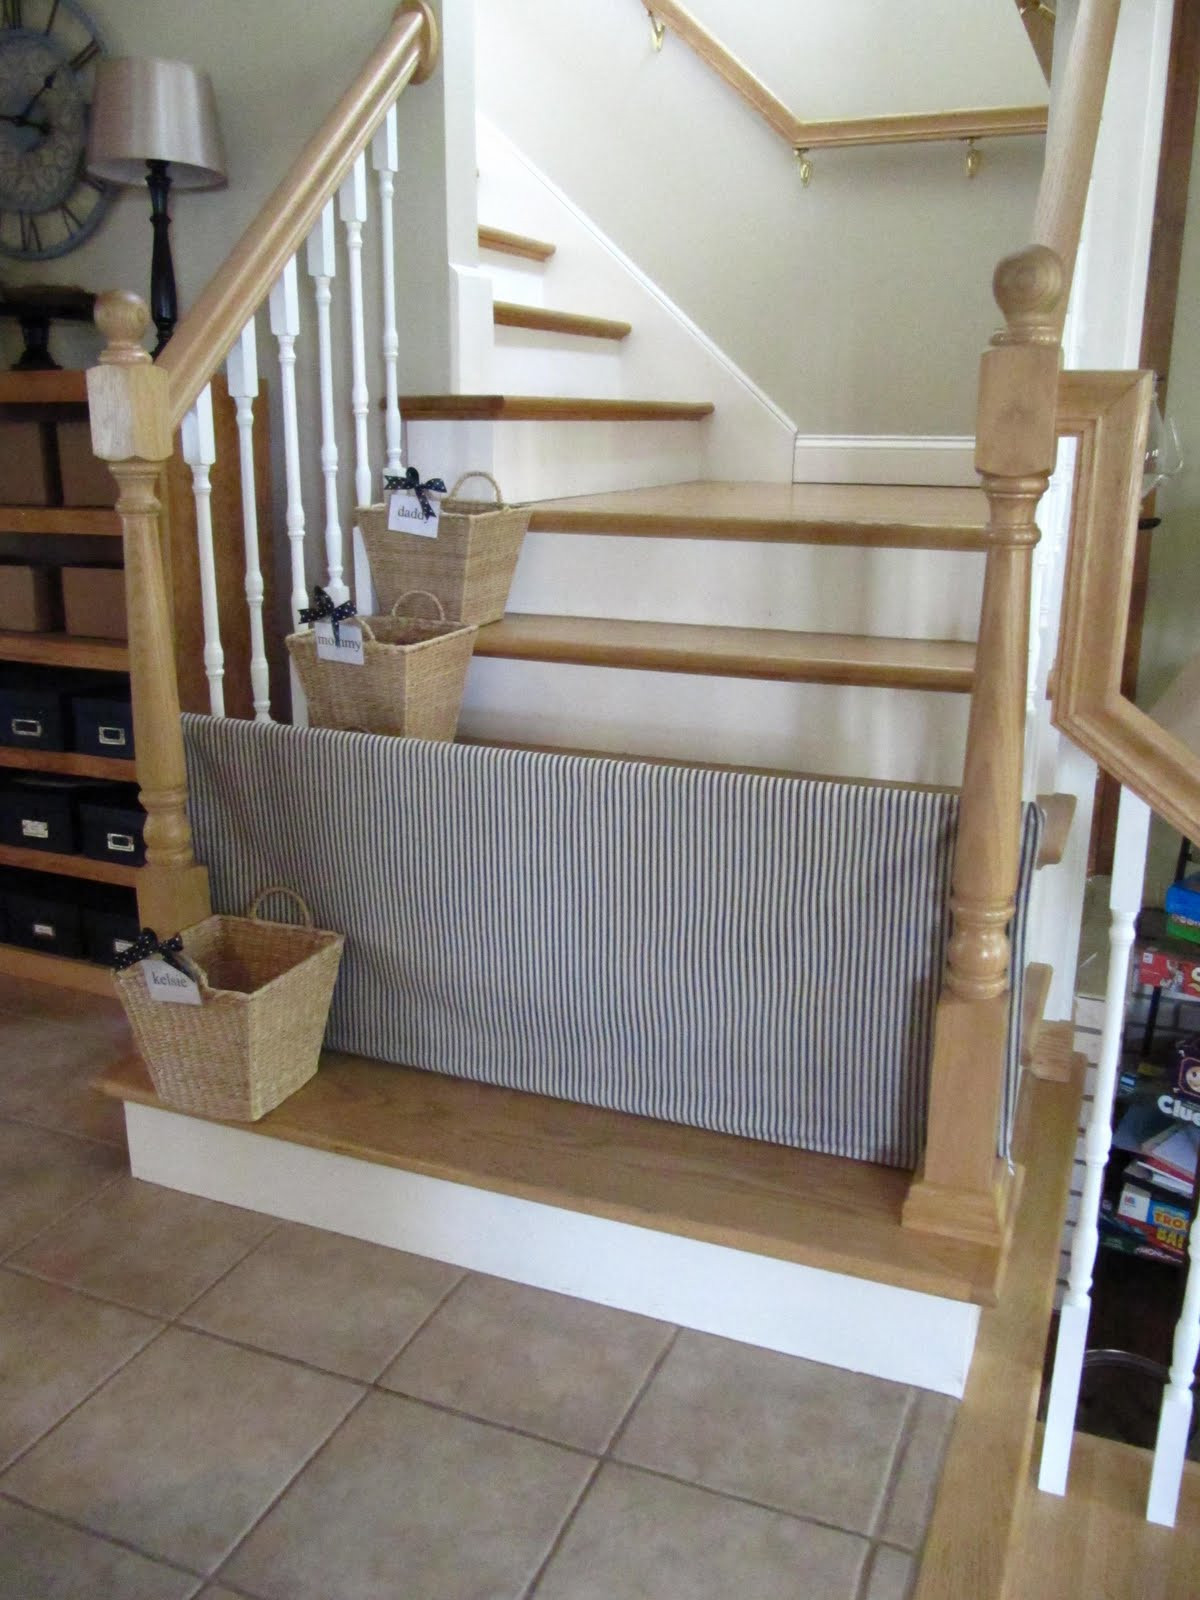 Best ideas about DIY Baby Gates . Save or Pin 10 DIY Baby Gates for Stairs Now.